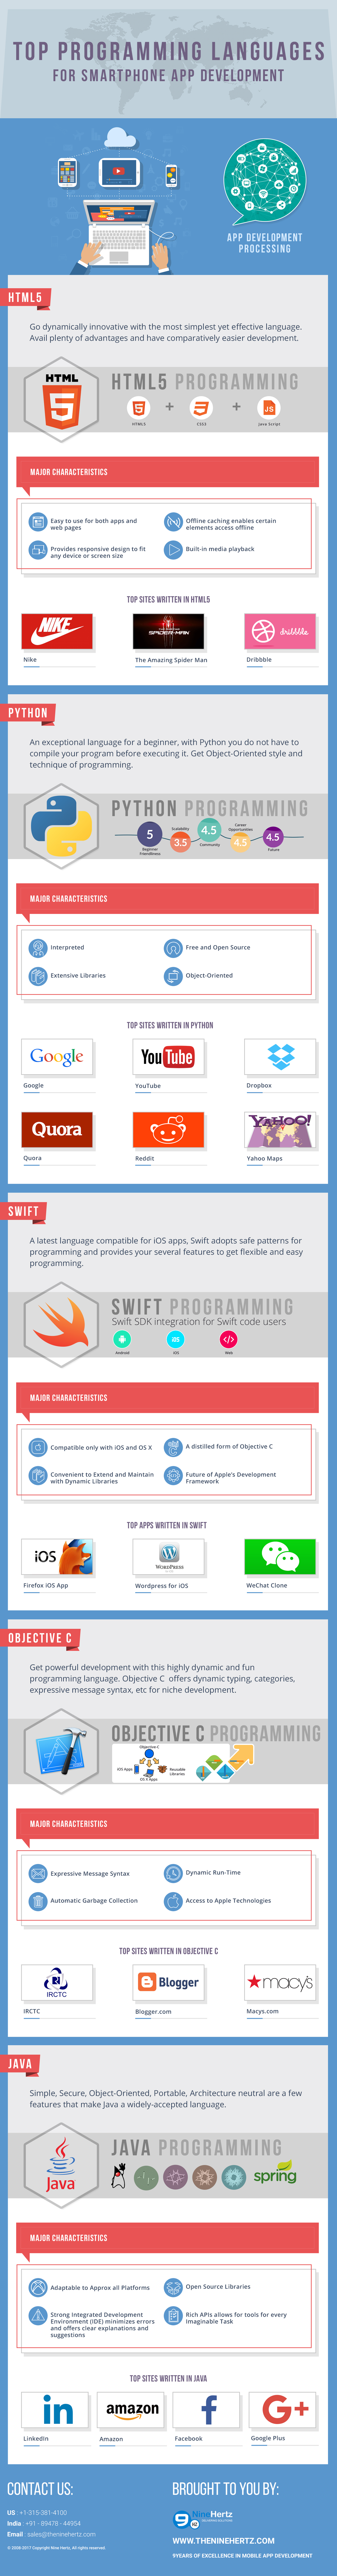 Most Popular Programming Languages For App Development - Image 1